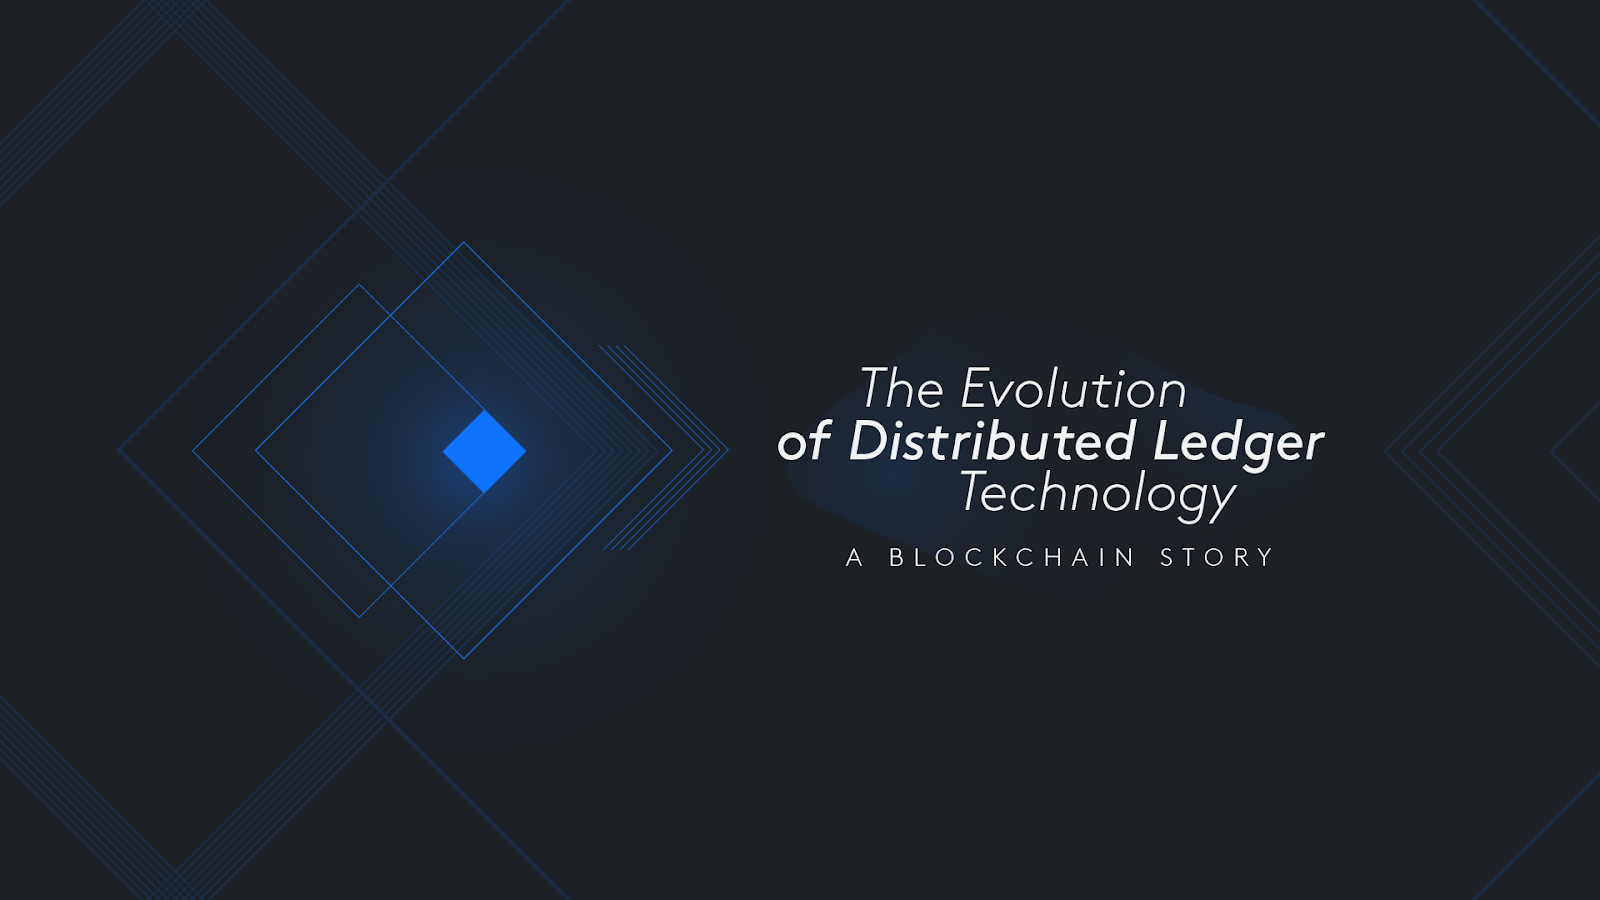 SkyCoin — Why is the Blockchain Significant?